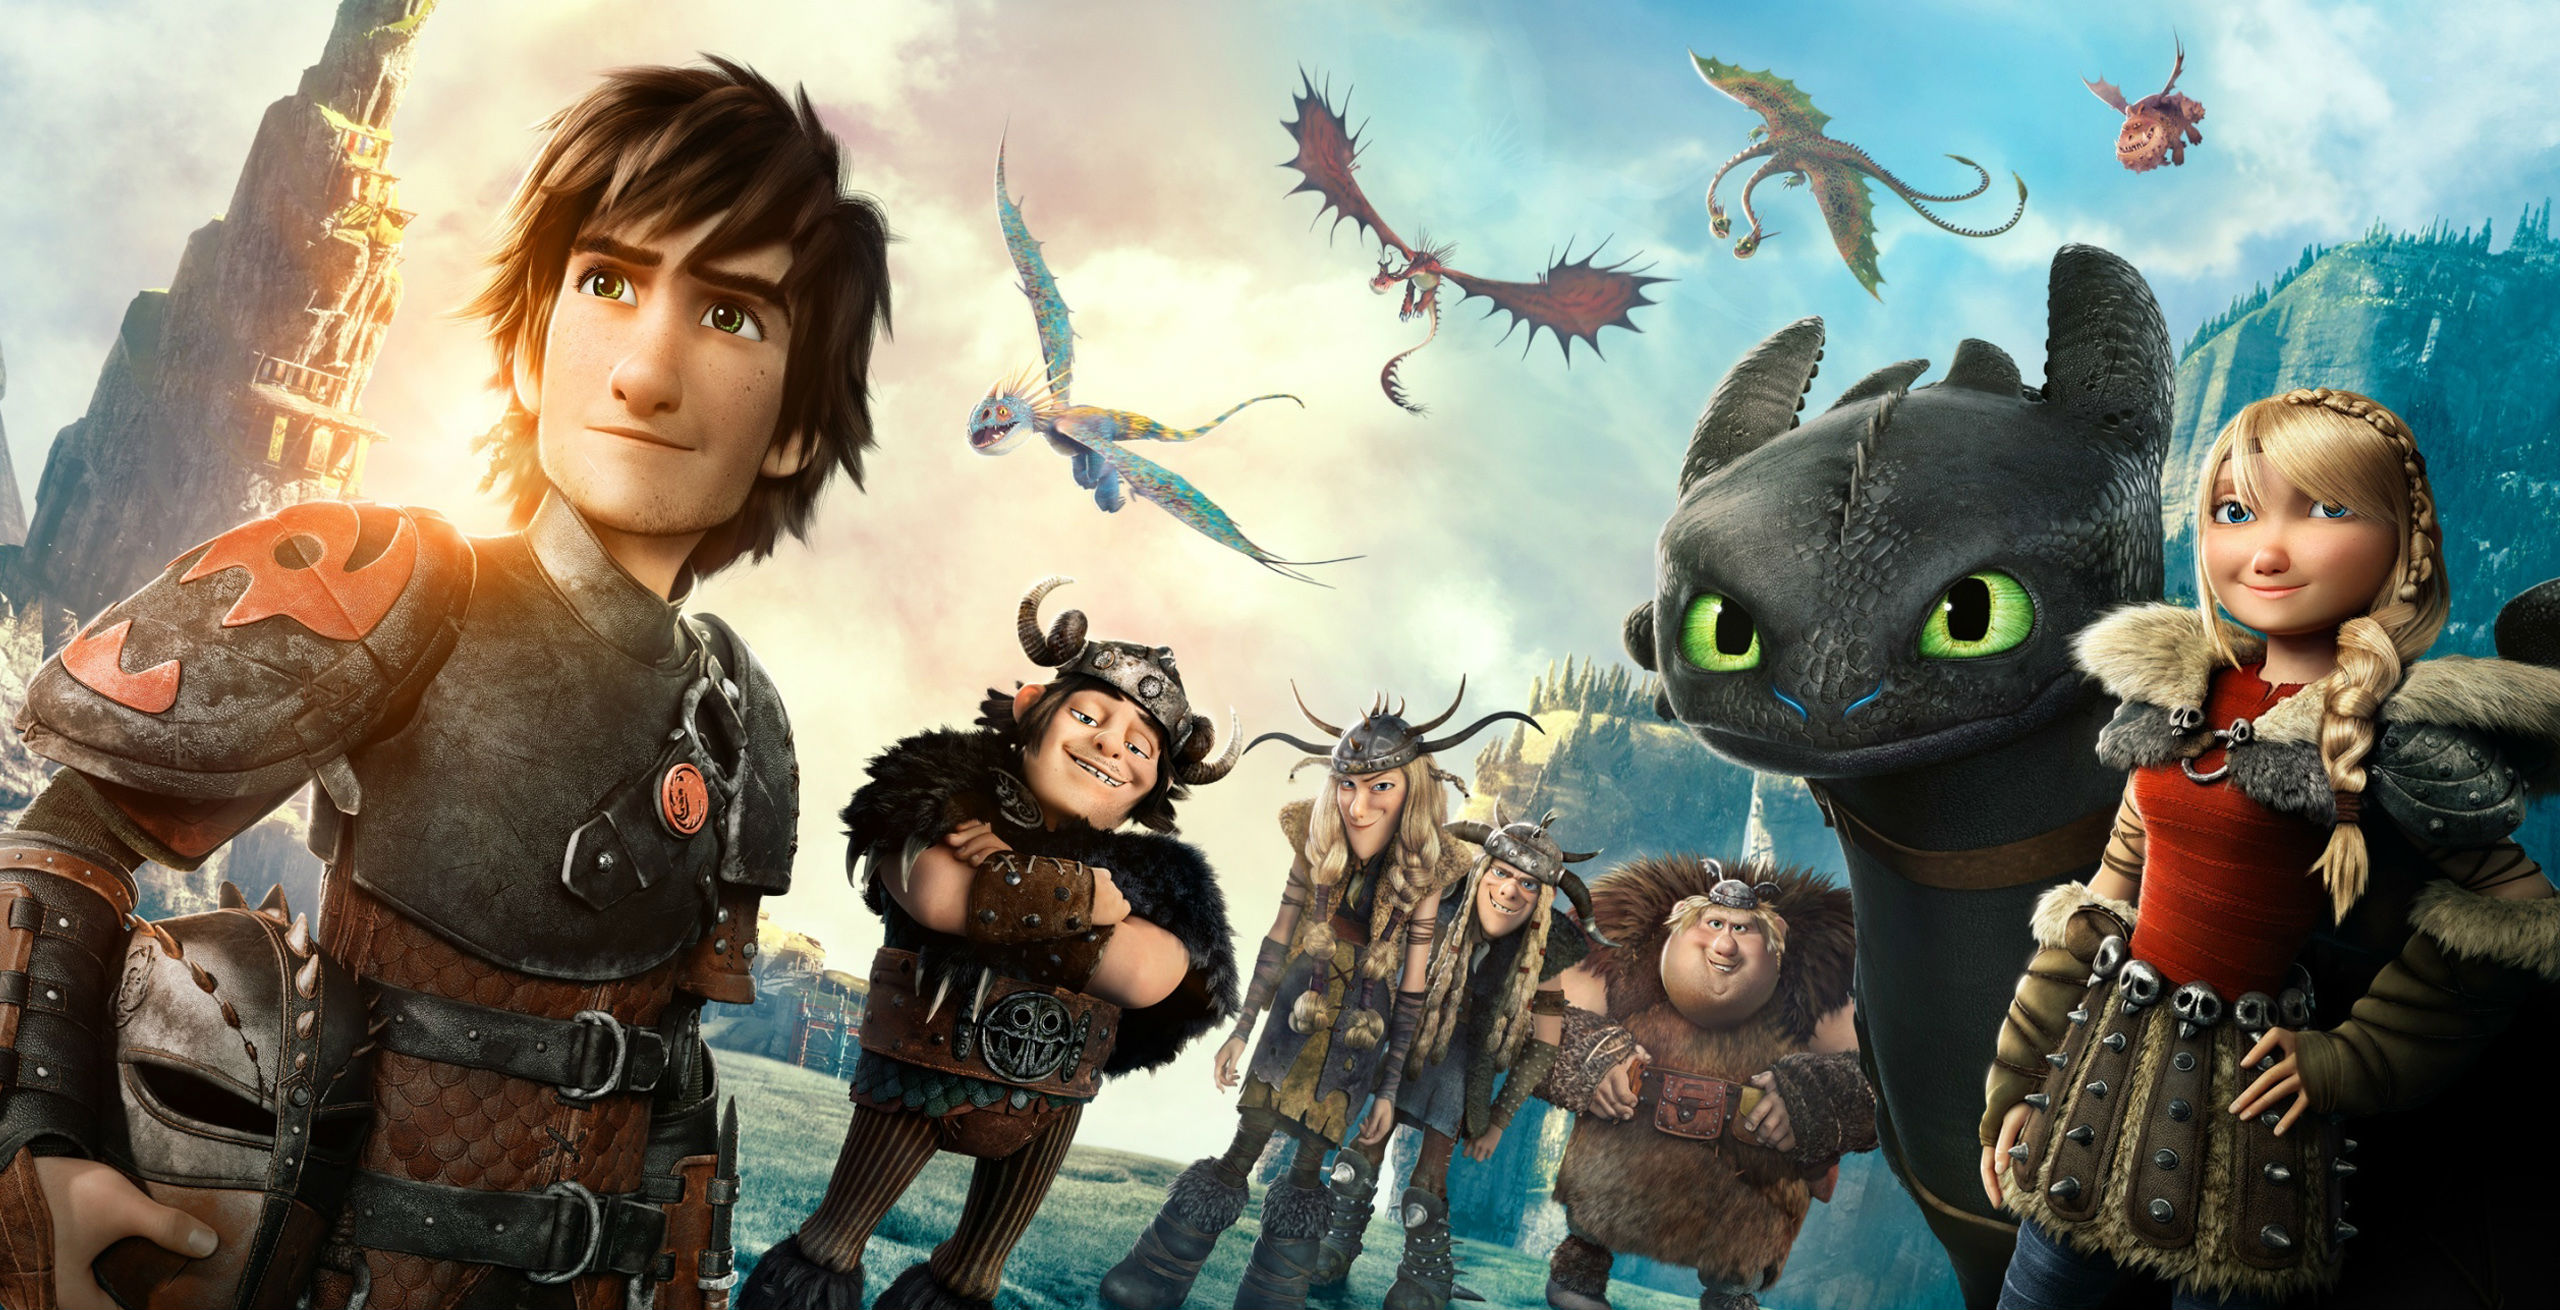 The characters from 'How to Train Your Dragon 2'.